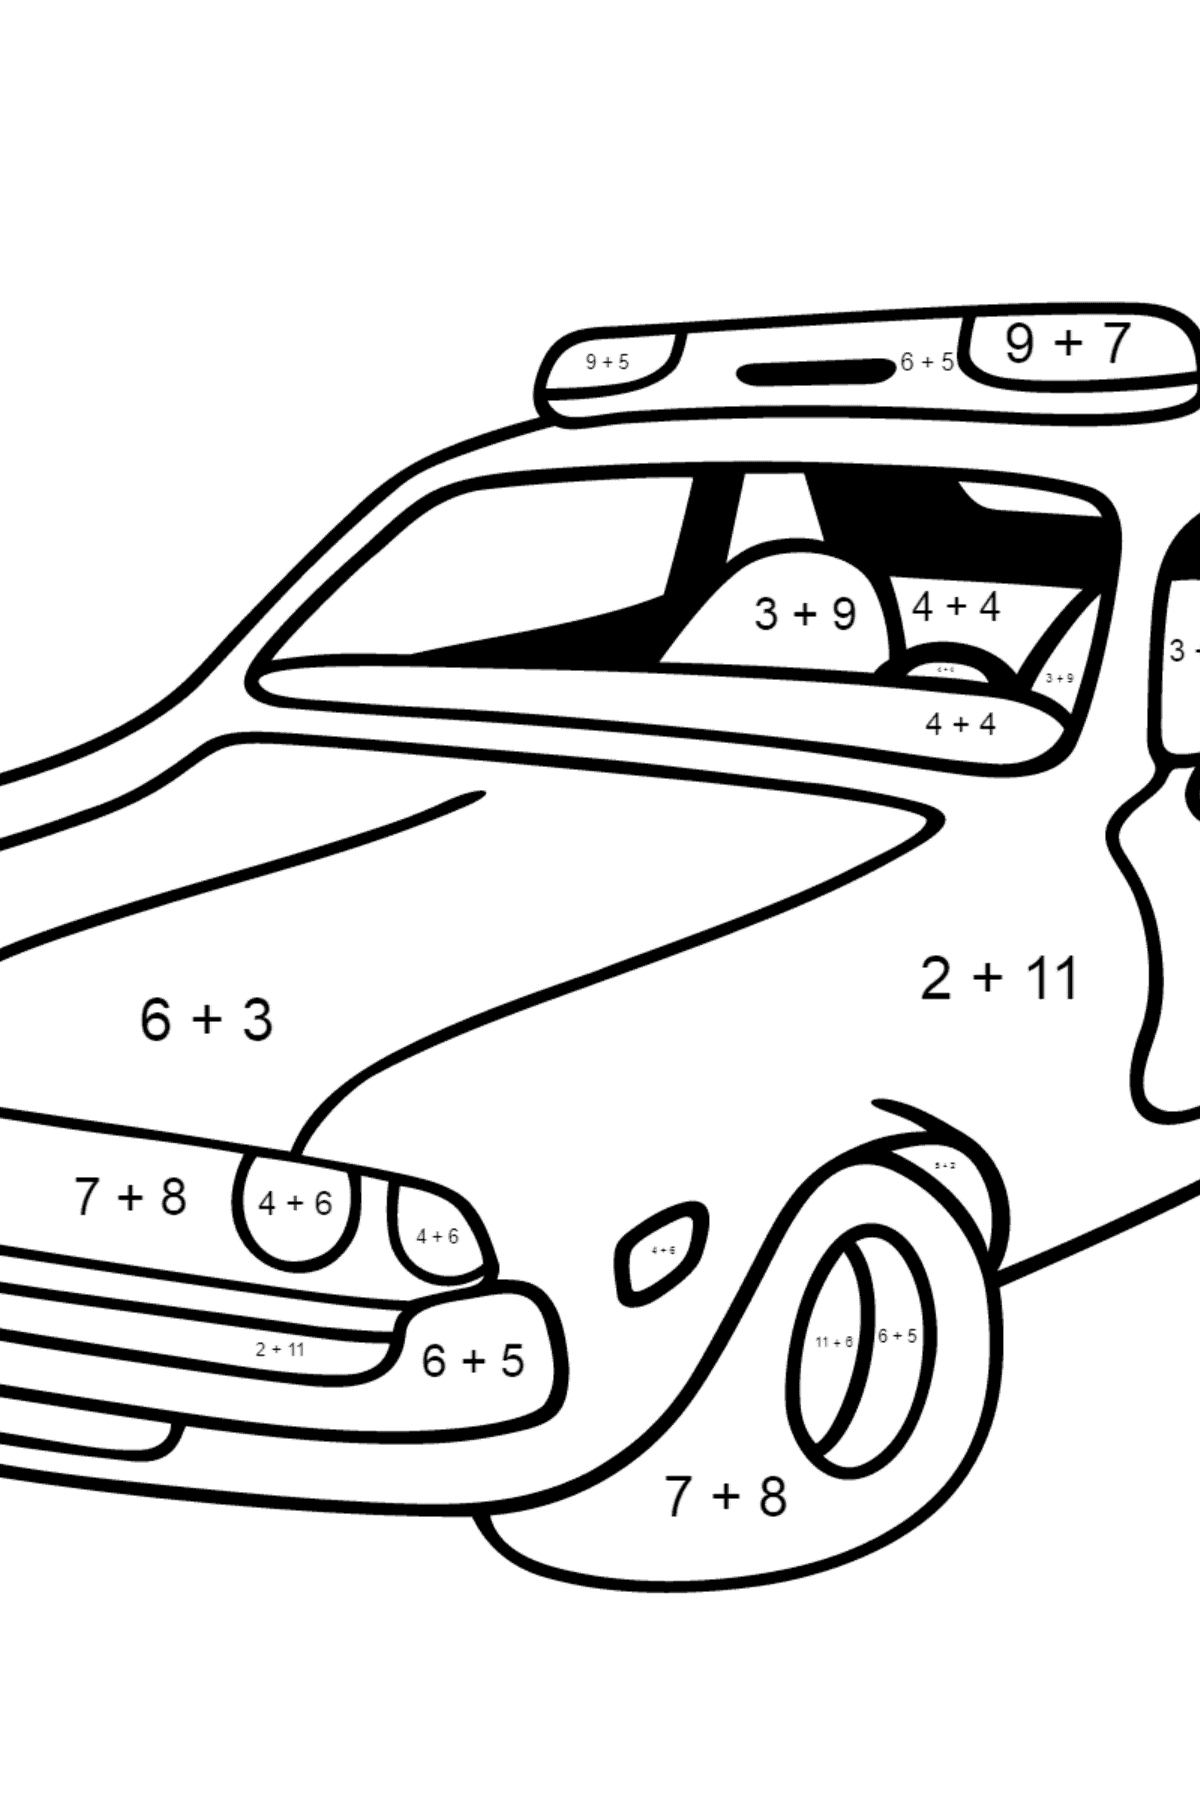 Coloring Page - A Red and White Police Car for Children  - Color by Number Addition